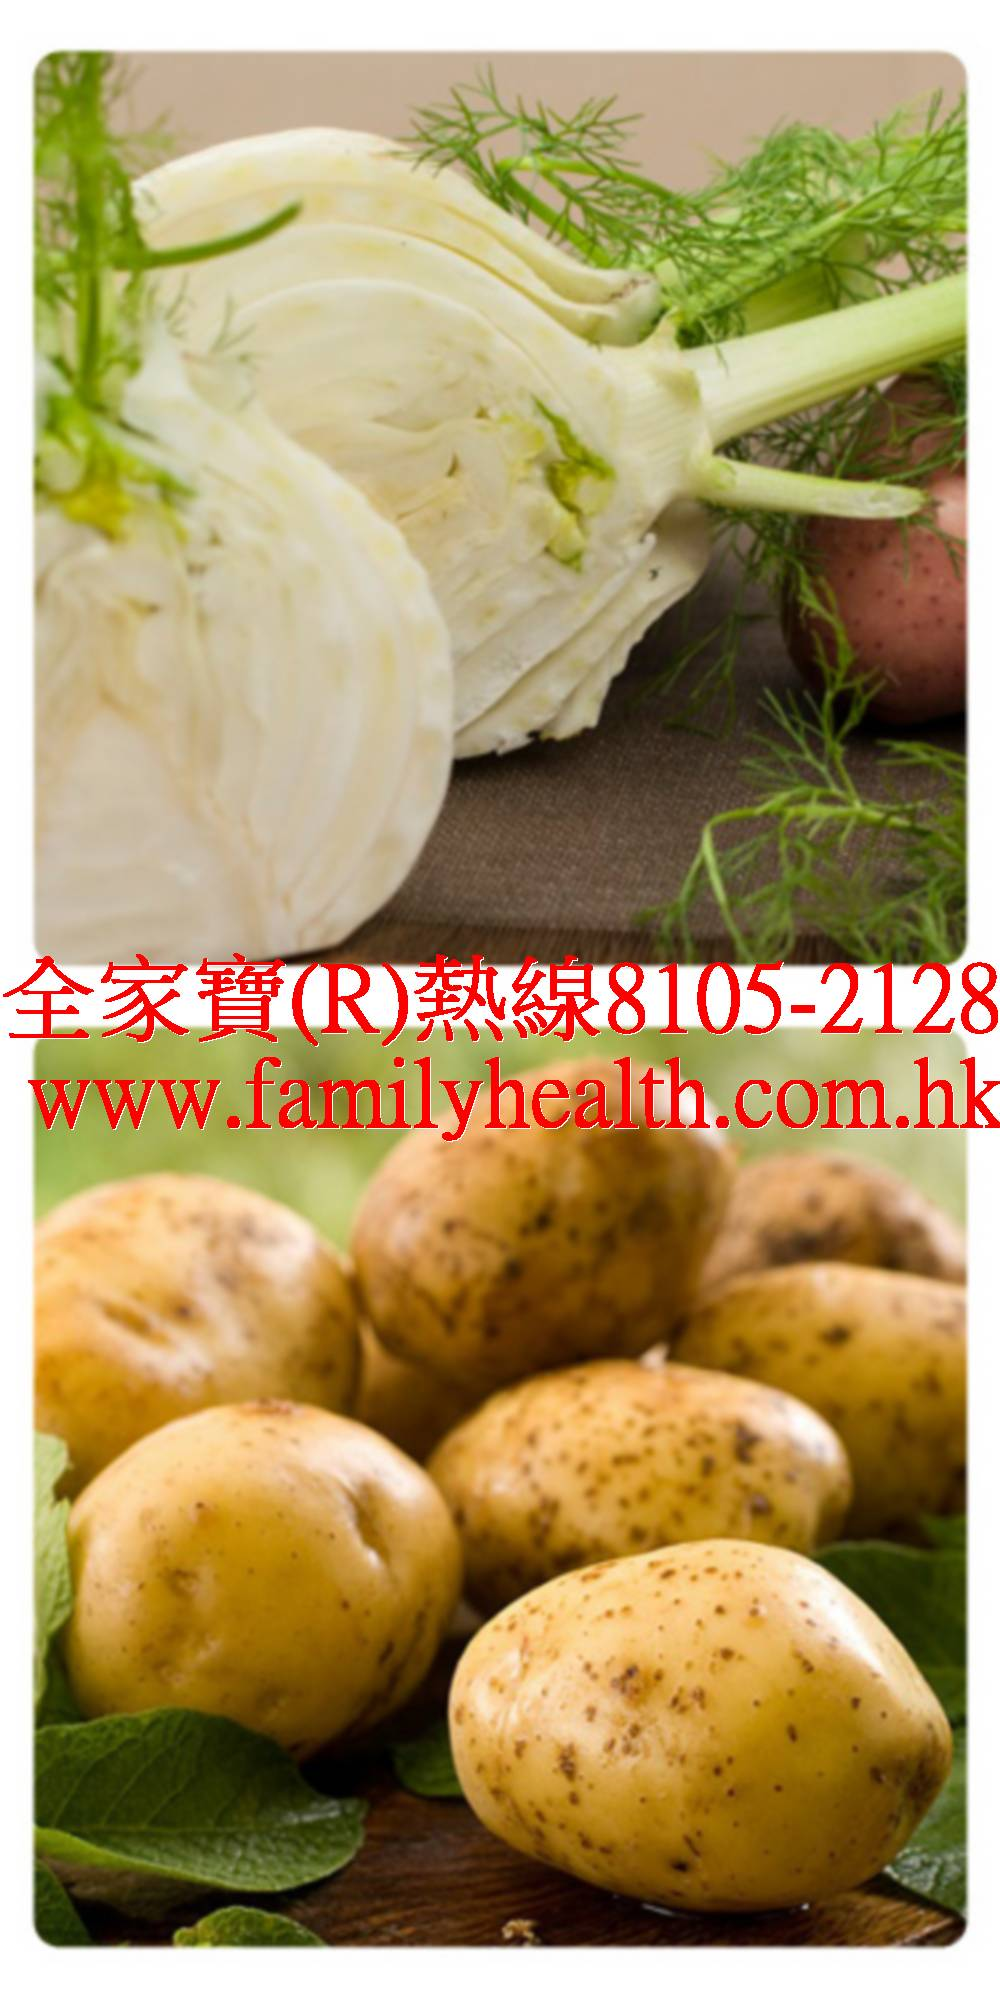 http://www.familyhealth.com.hk/files/full/953_3.jpg